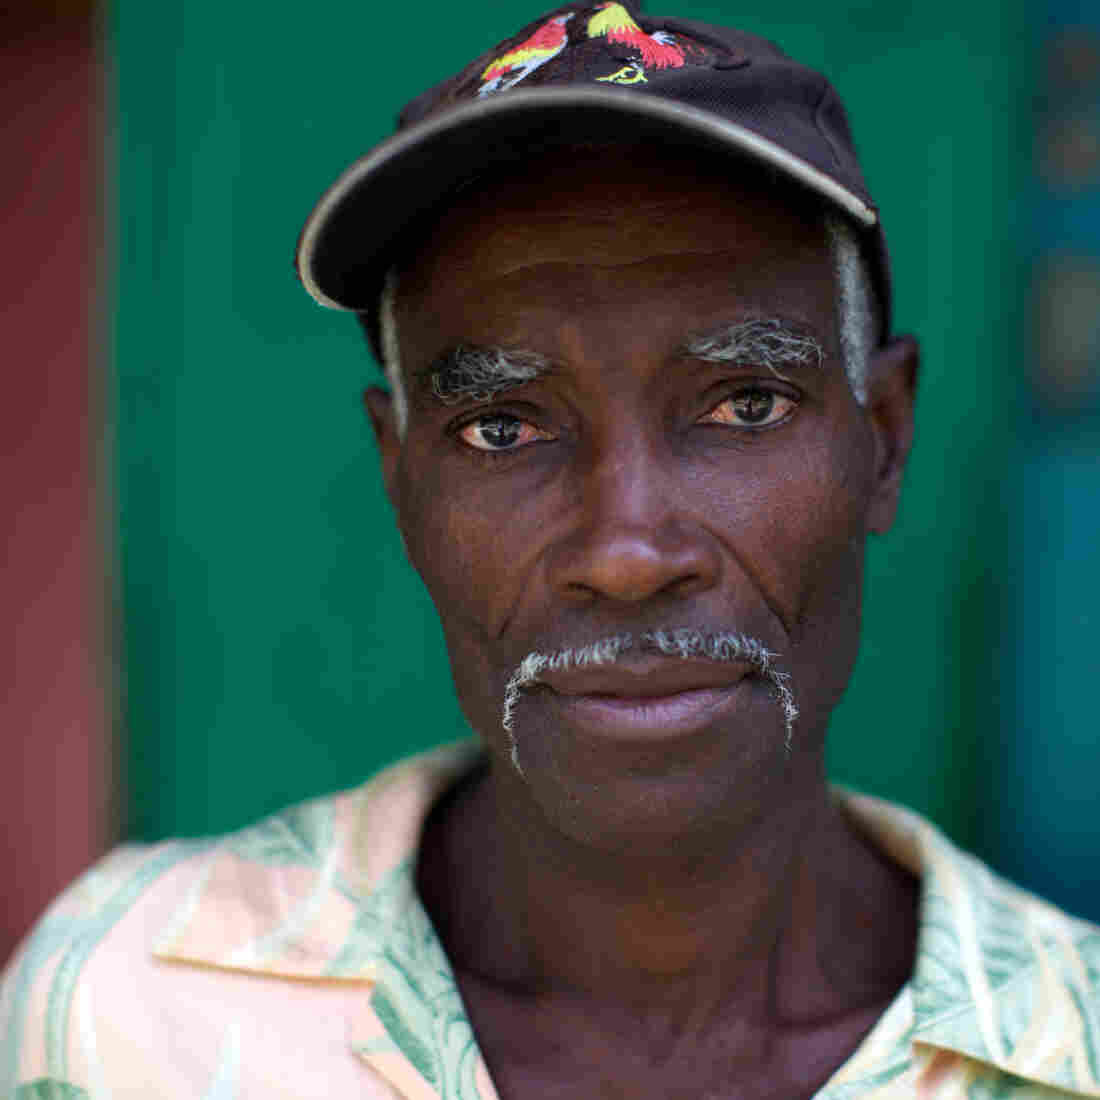 Francois St. Ker, 55, was on the brink of dying from AIDS in the spring of 2001. Today, he's a successful farmer and is in good health, thanks to treatment for his HIV.